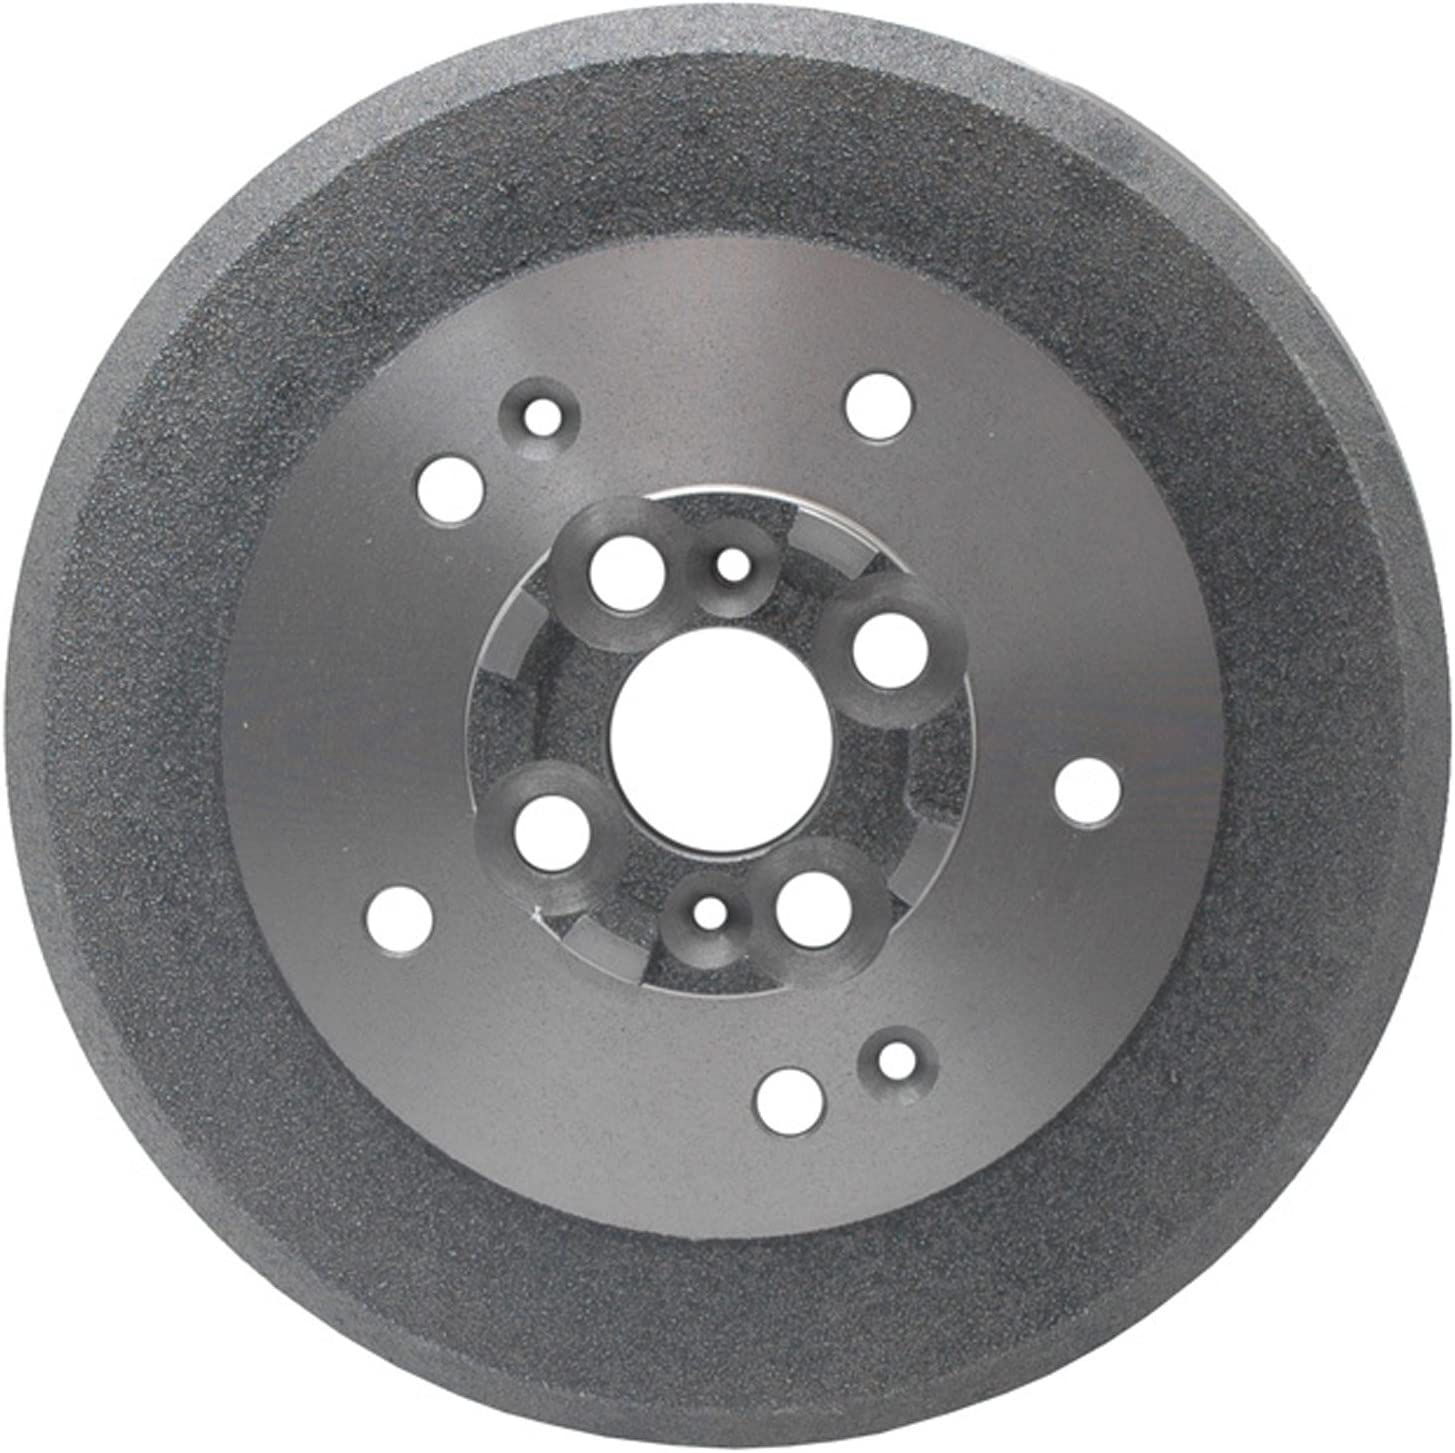 ACDelco Professional Spring new work one Popular overseas after another 18B419 Rear Drum Brake